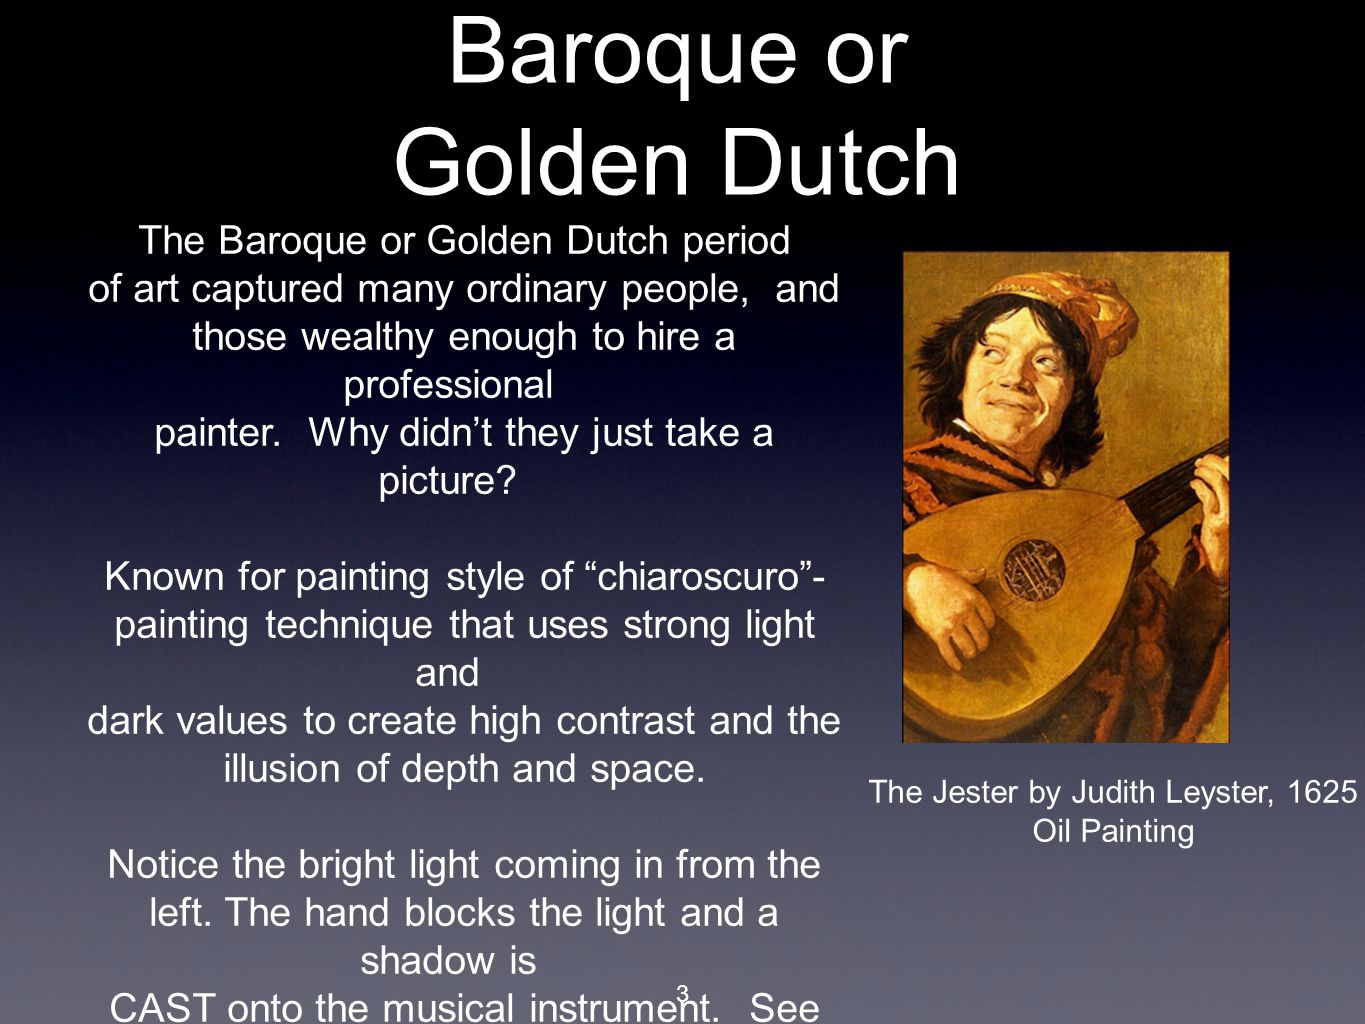 3 Baroque or Golden Dutch The Baroque or Golden Dutch period of art captured many ordinary people, and those wealthy enough to hire a professional painter.